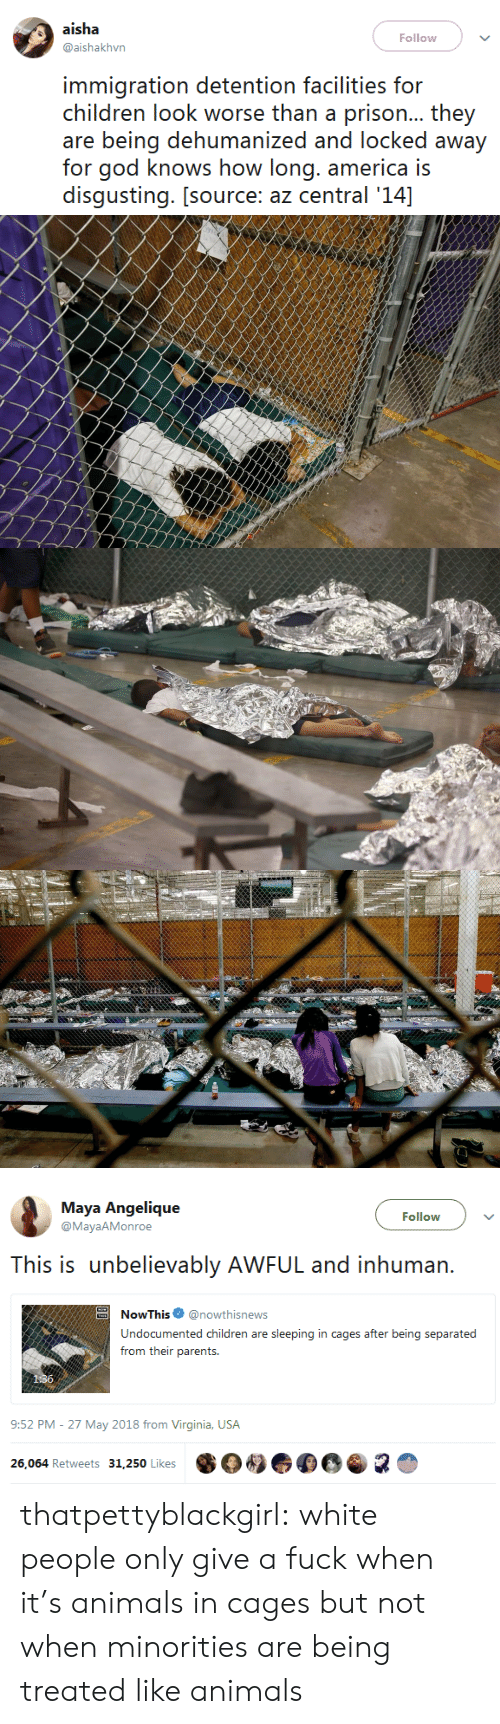 Minorities: aisha  Follow  @aishakhvn  immigration detention facilities for  children look worse than a prison... they  are being dehumanized and locked away  for god knows how long. america is  disgusting. [source: az central '14]   Maya Angelique  @MayaAMonroe  Follow  This is unbelievably AWFUL and inhuman.  oThis@nowthisnews  Undocumented children are sleeping in cages after being separated  from their parents.  9:52 PM-27 May 2018 from Virginia, USA  26,064 Retweets 31,250 Likes  ·04.  R thatpettyblackgirl:   white people only give a fuck when it's animals in cages but not when minorities are being treated like animals